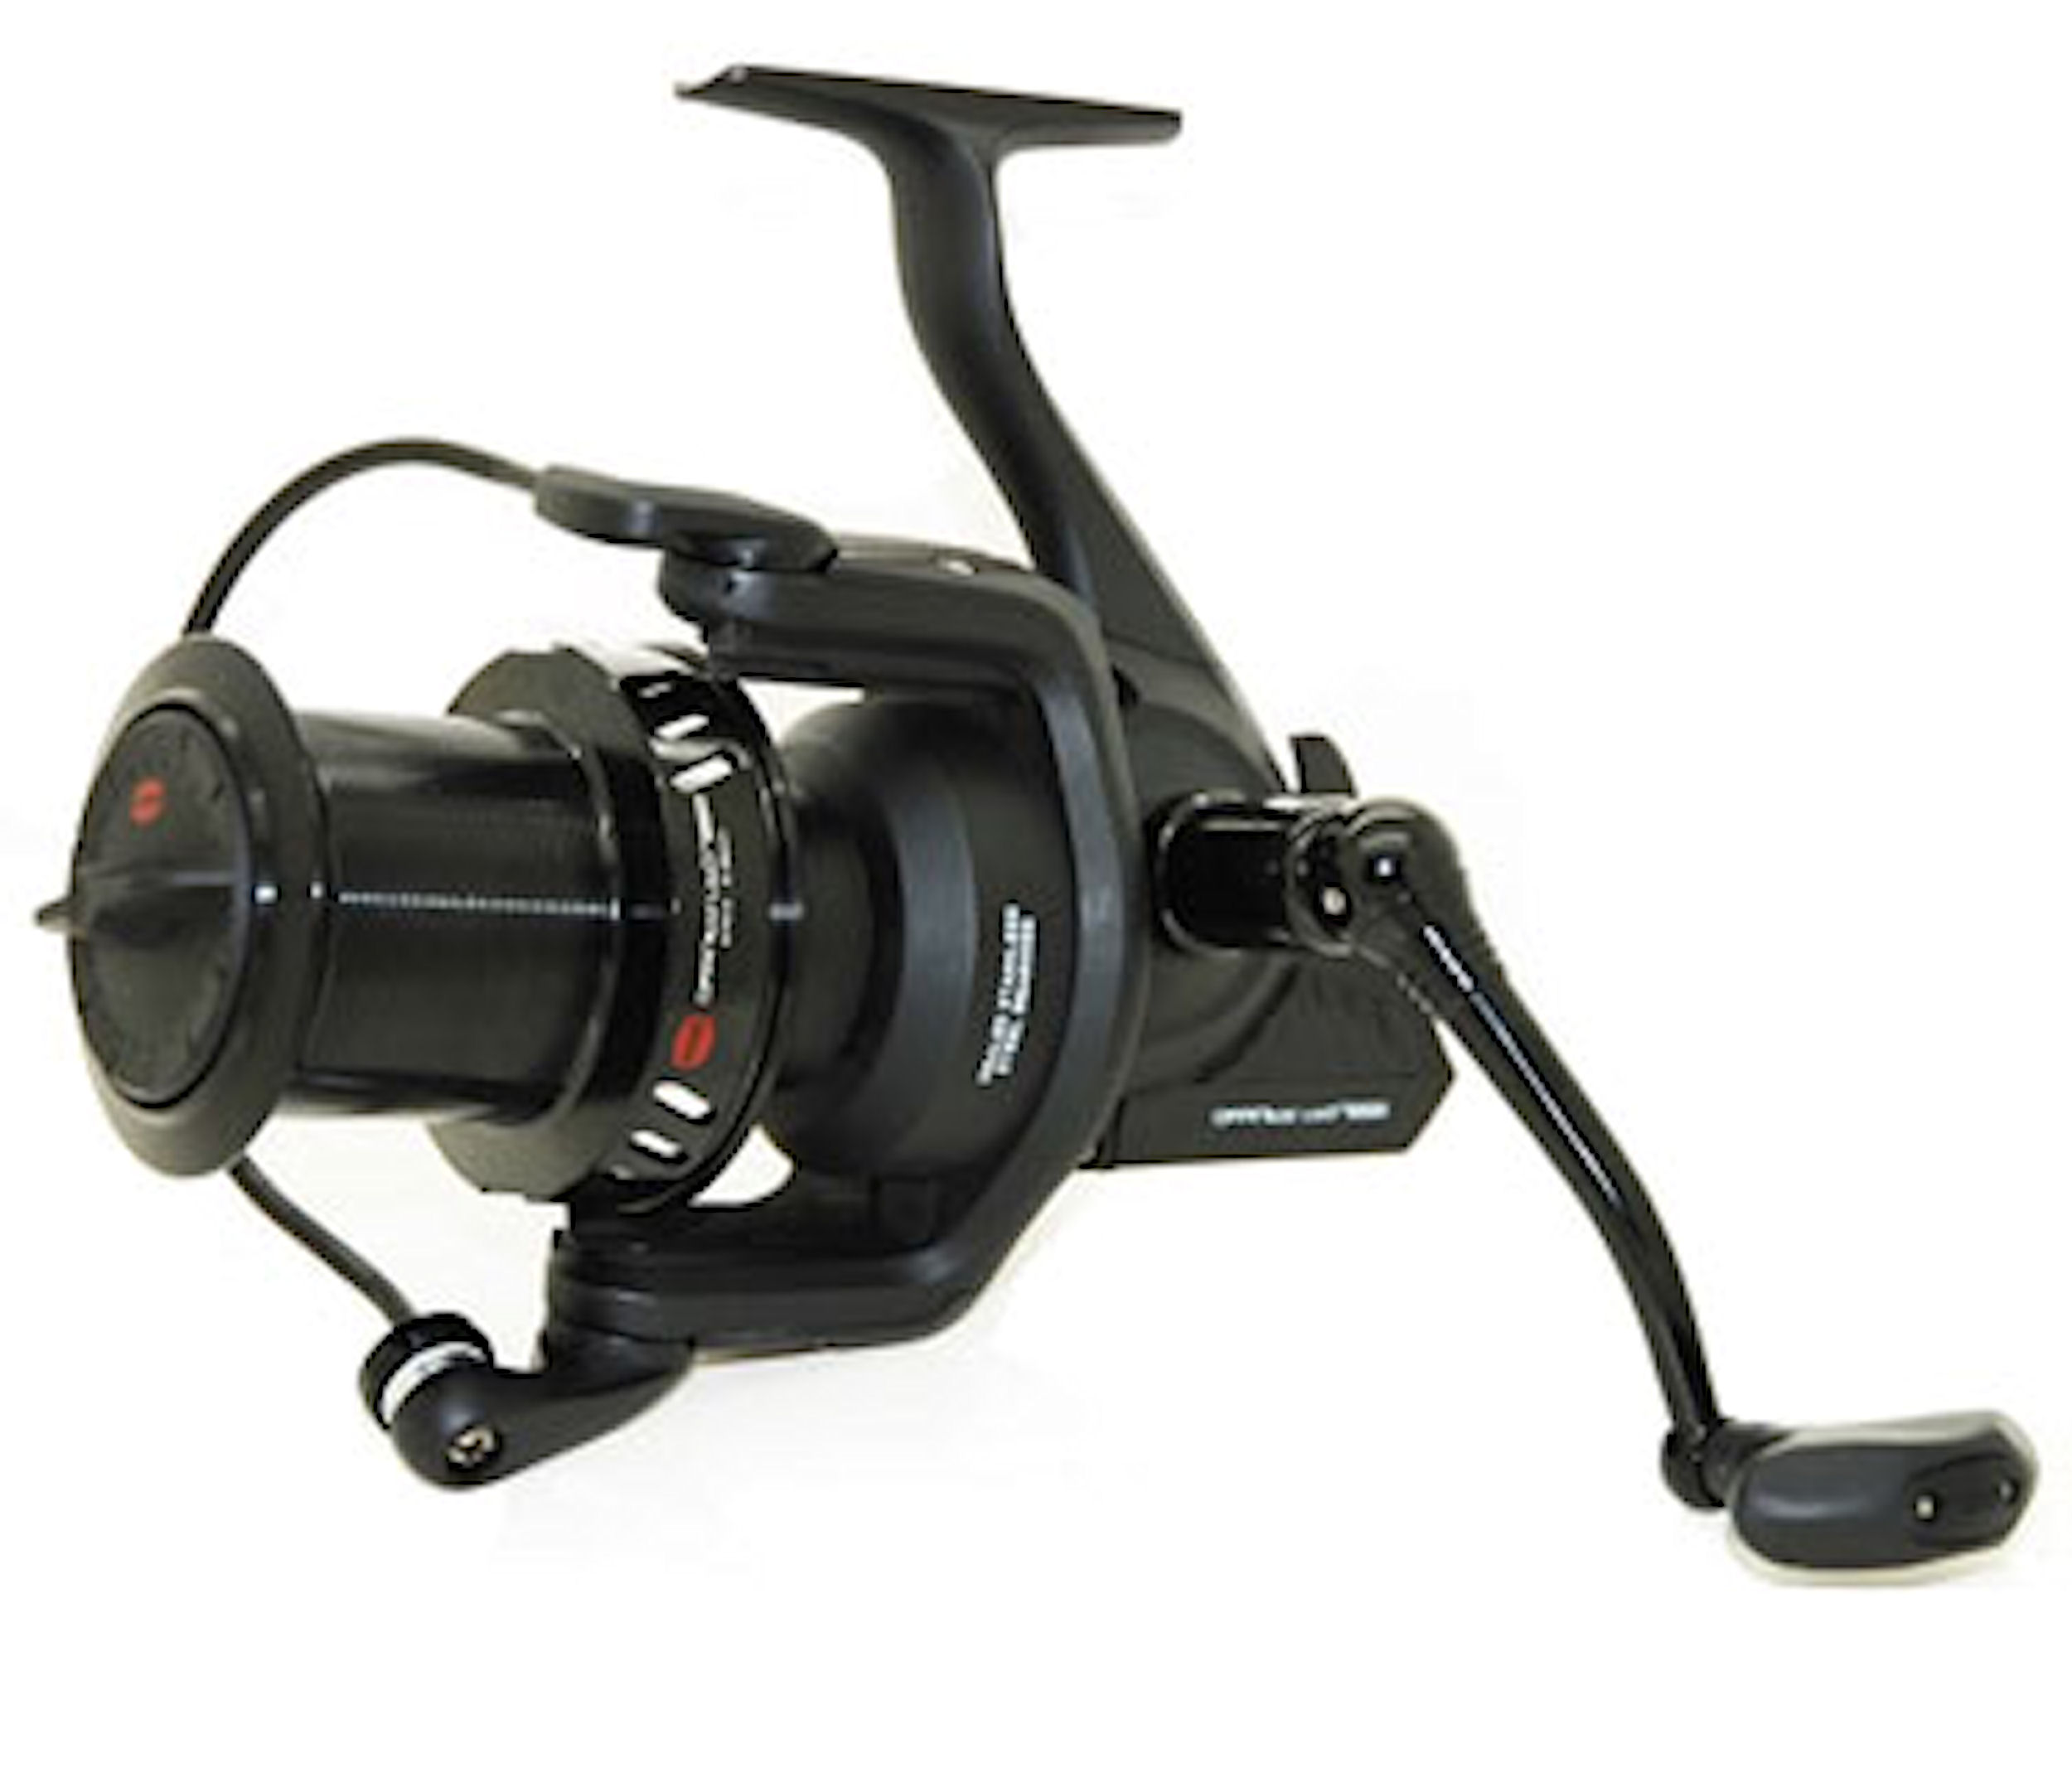 Penn affinity uk reel specs click to view larger pooptronica Images